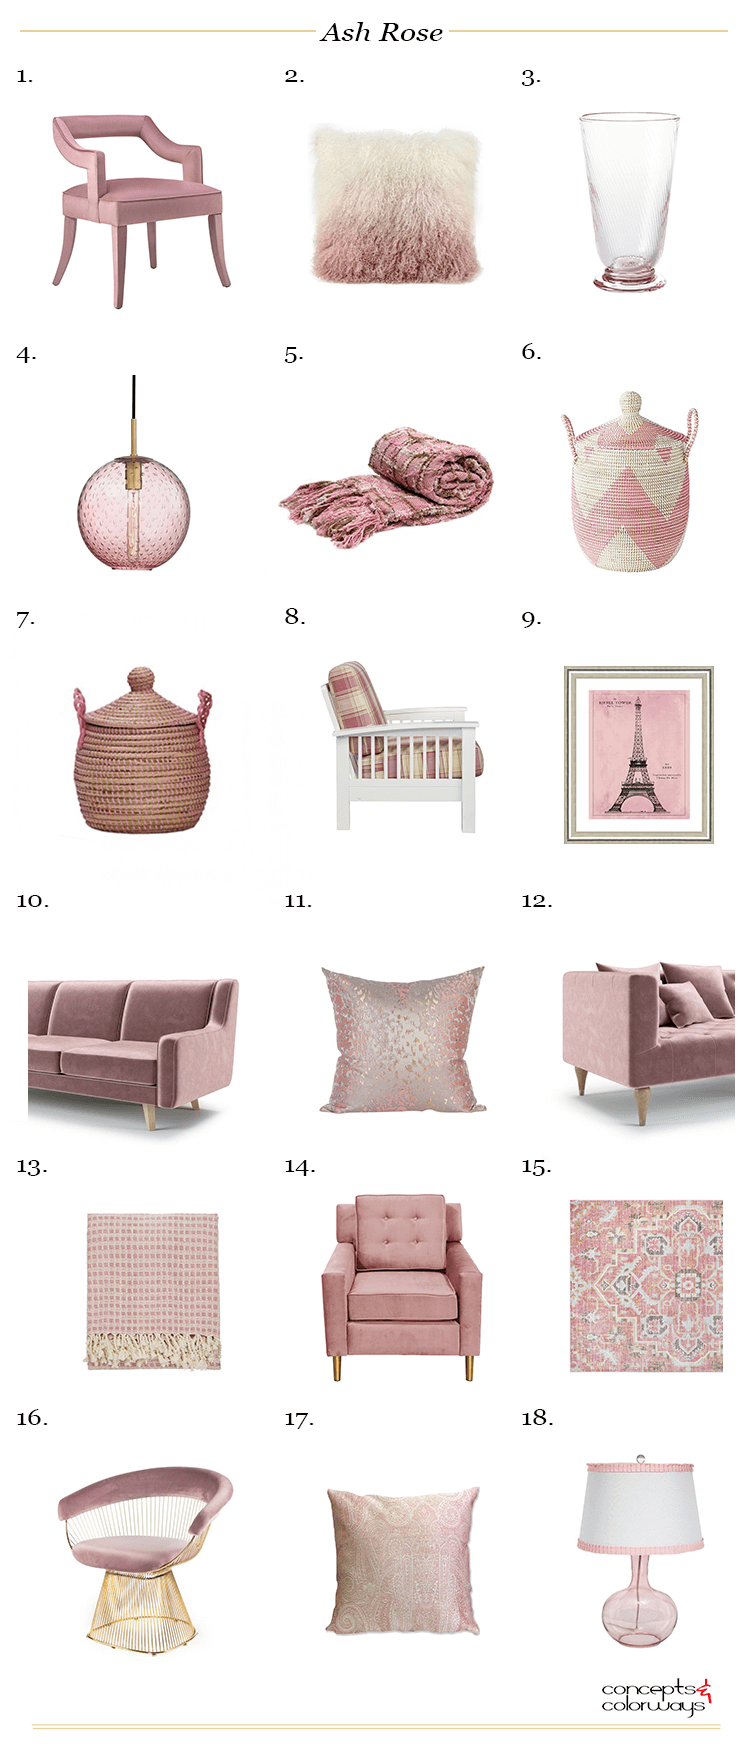 pantone ash rose, ash rose, rose pink, rose pink decor, rose pink chair, rose pink pillow, rose pink rug, mauve pink, mauve decor, blush pink decor, blush pink, blush pink chair, blush pink pillows, blush pink rug, mauve rug, mauve chair, mauve couch, blush pink sofa, blush pink couch